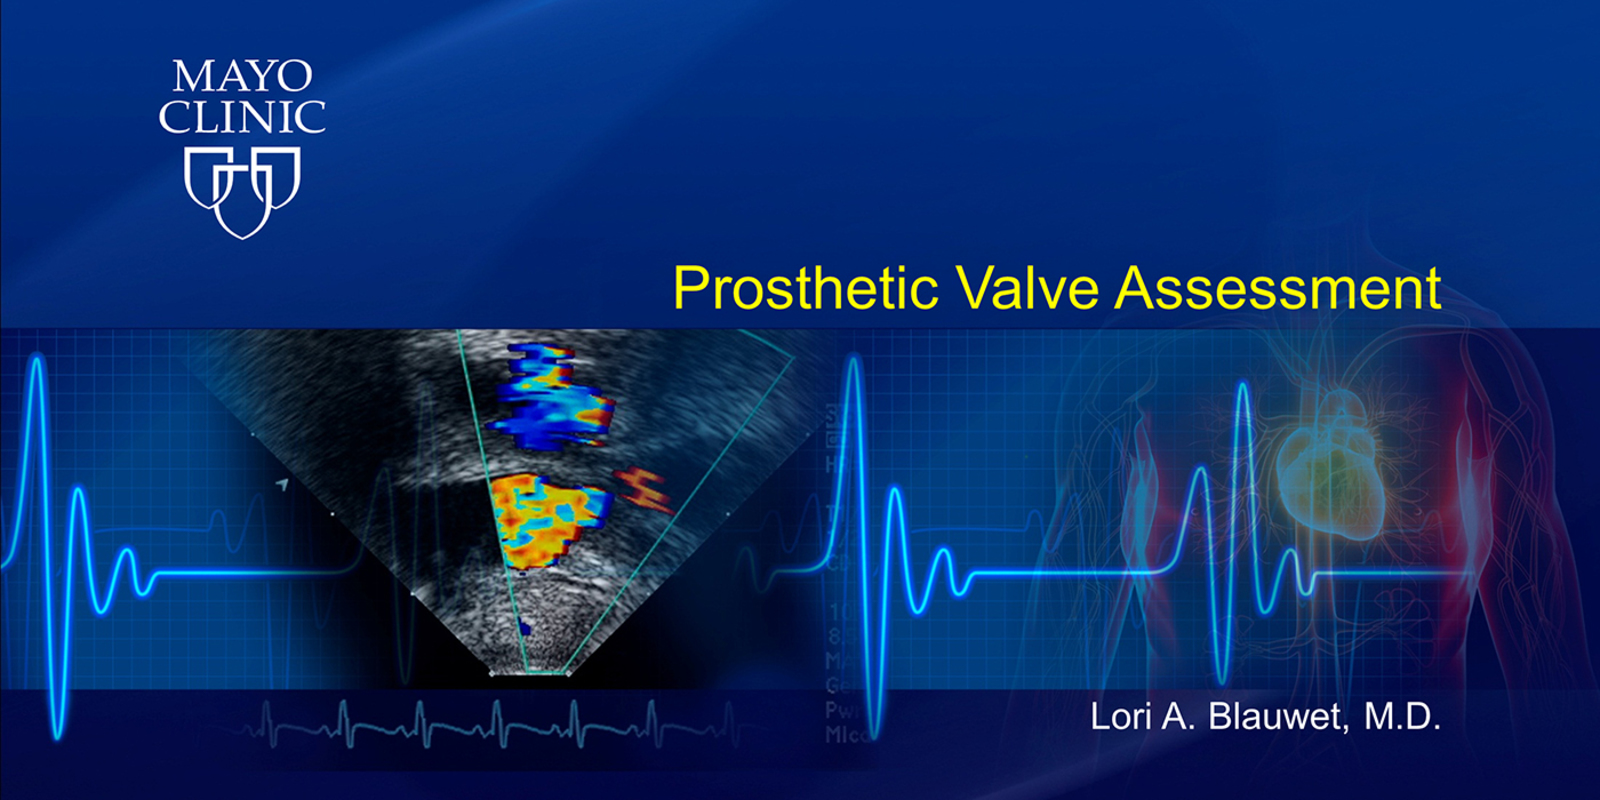 Prosthetic Valve Assessment